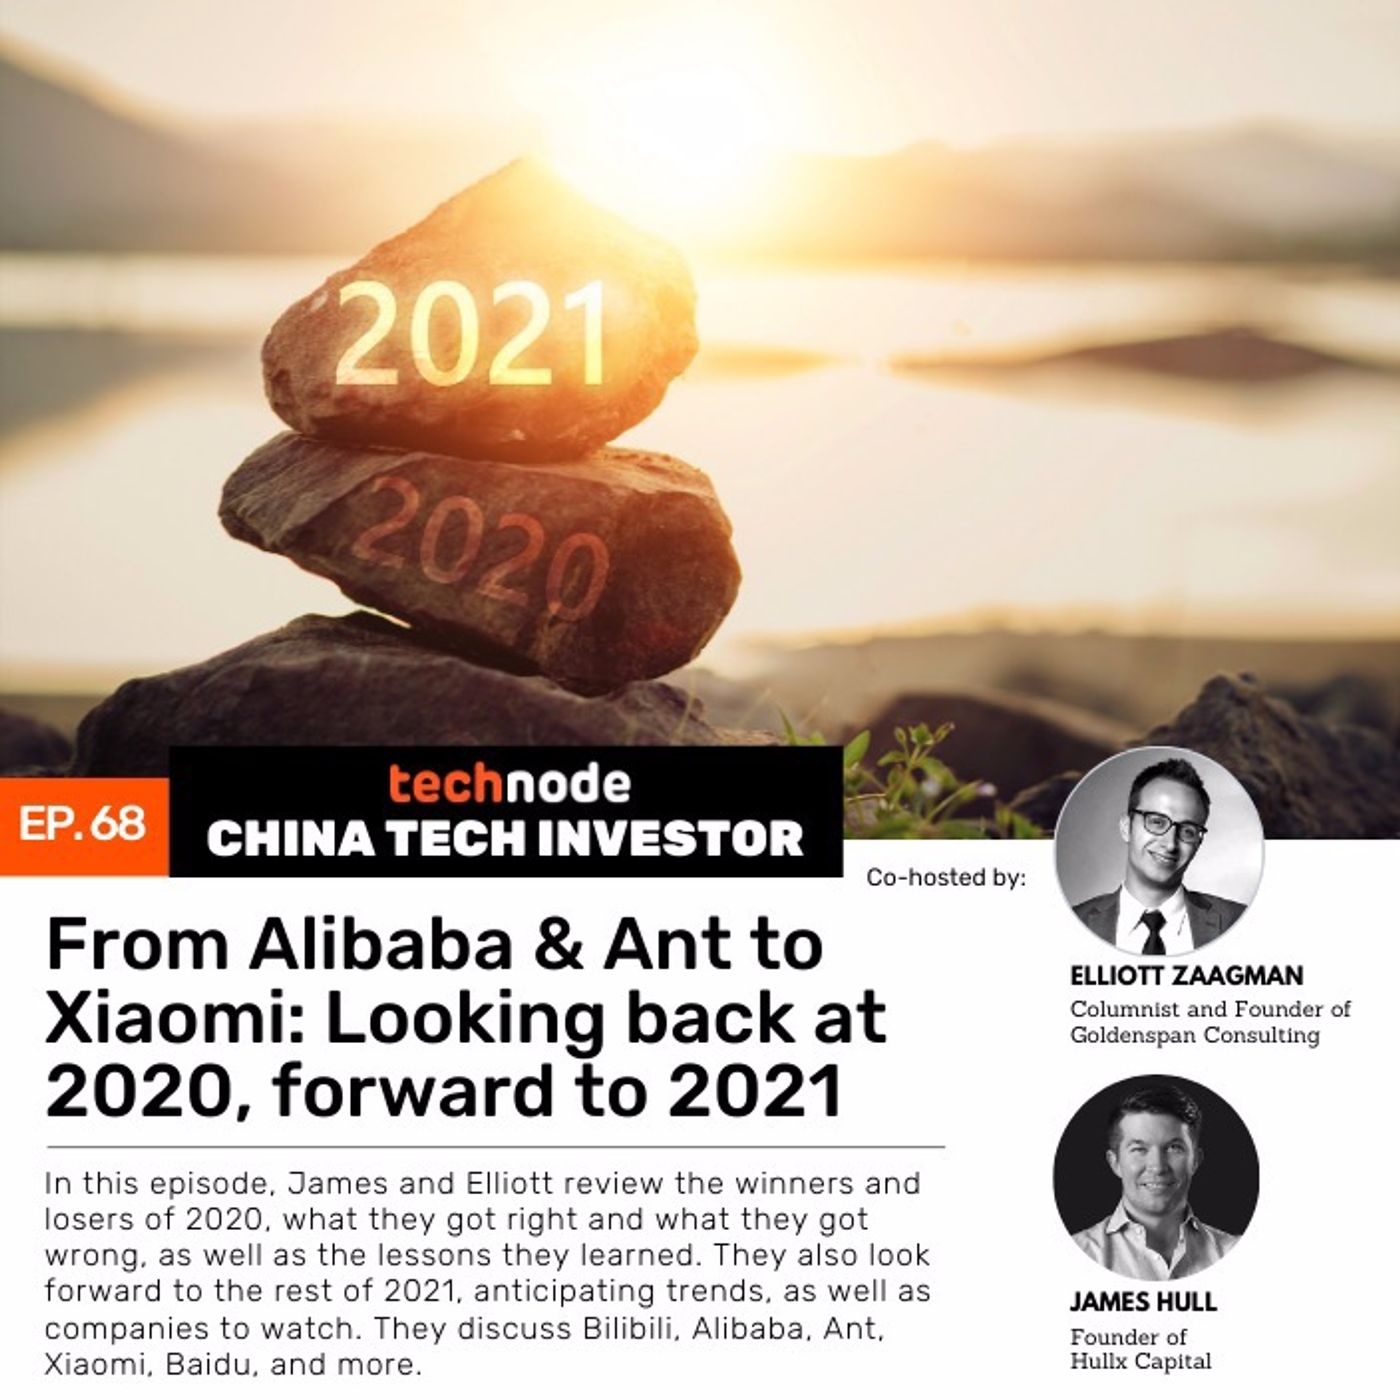 CTI 68: From Alibaba & Ant to Xiaomi: Looking back at 2020, forward to 2021